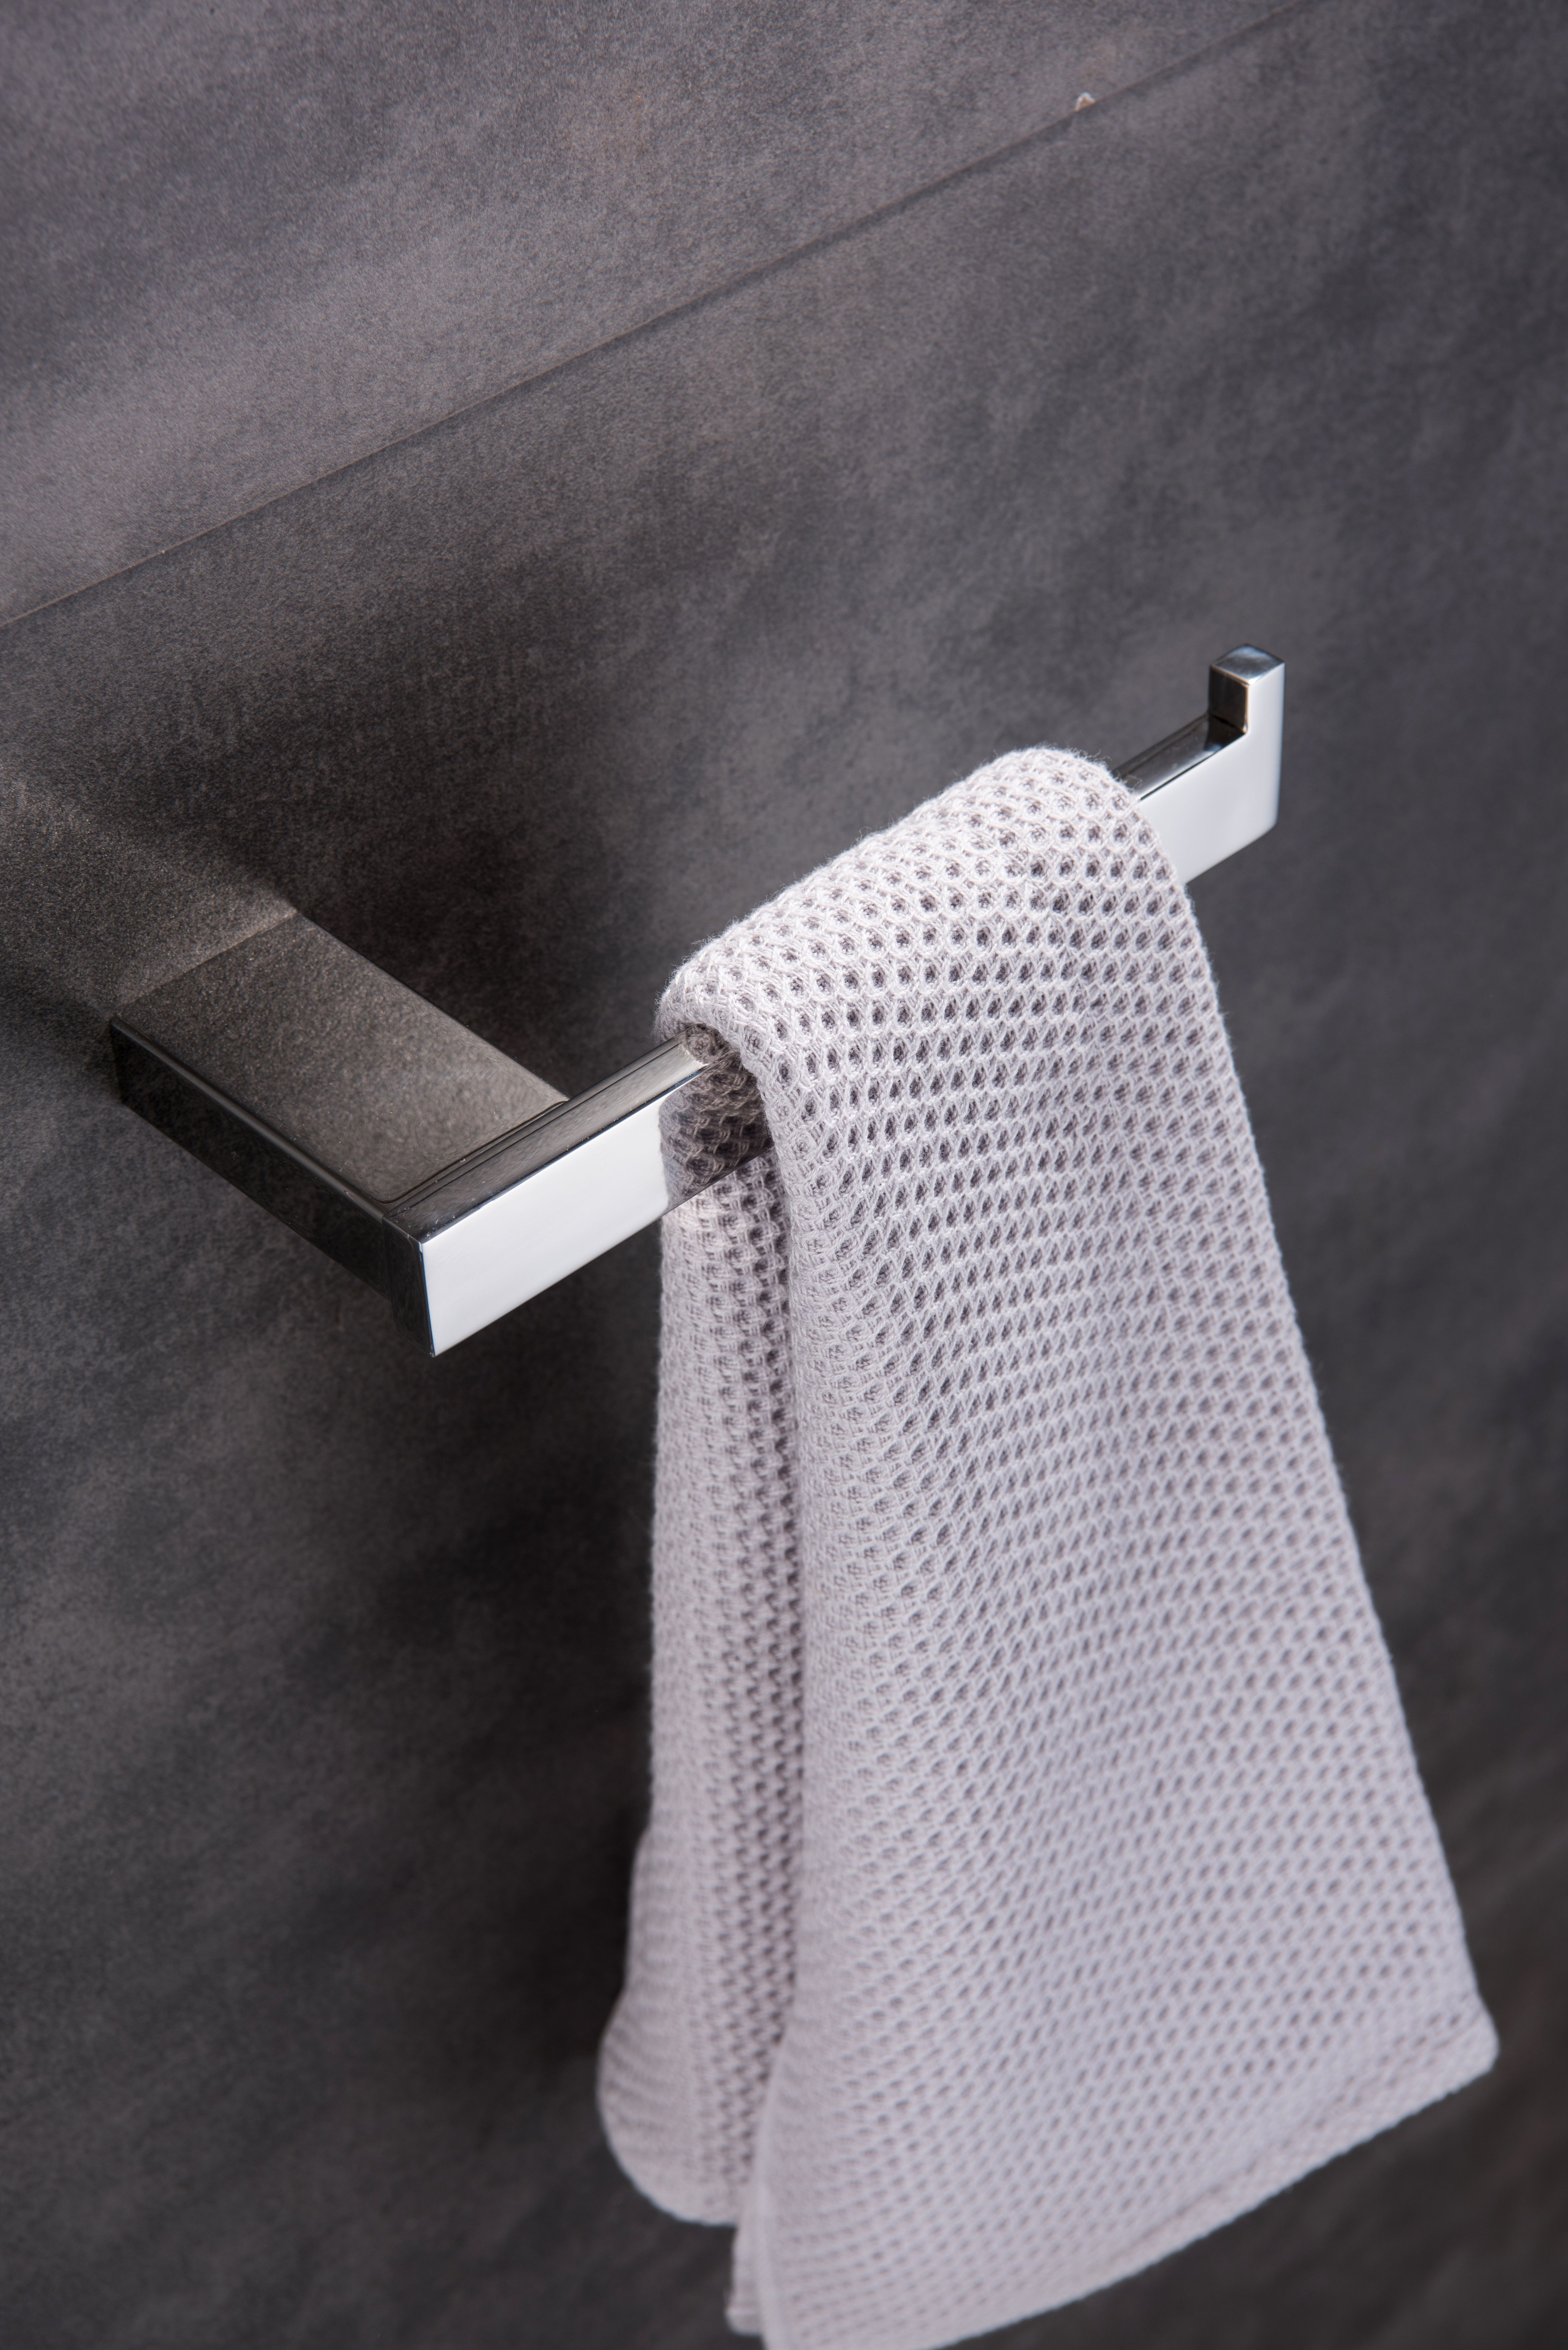 Brampton Hand Towel Holder With Images Hand Towel Holder Towel Holder Hand Towels